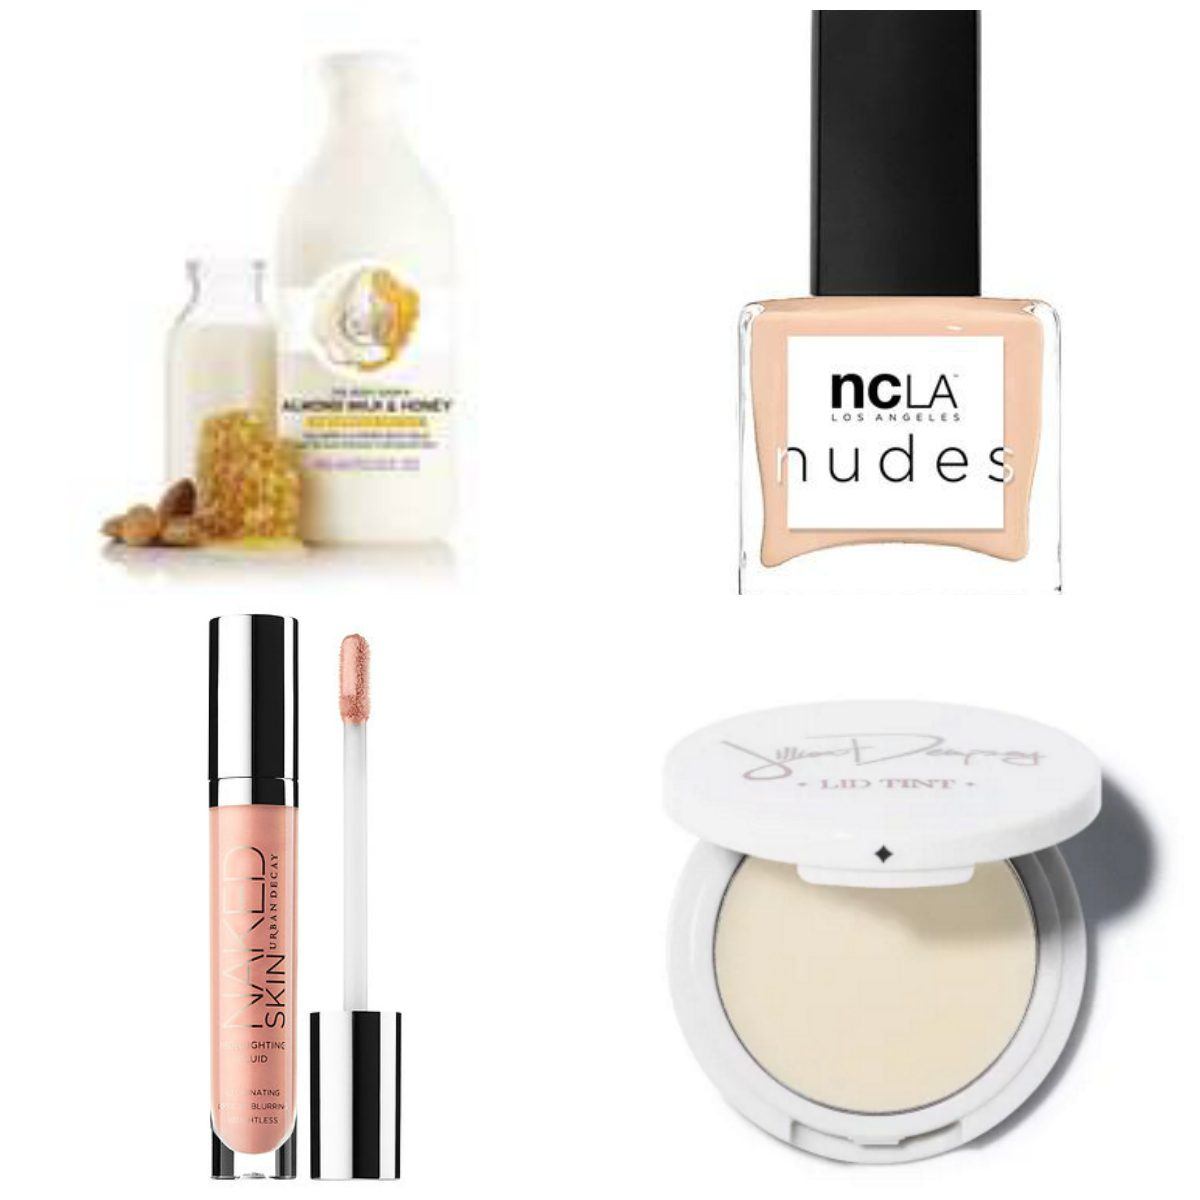 Julia's April Favorites